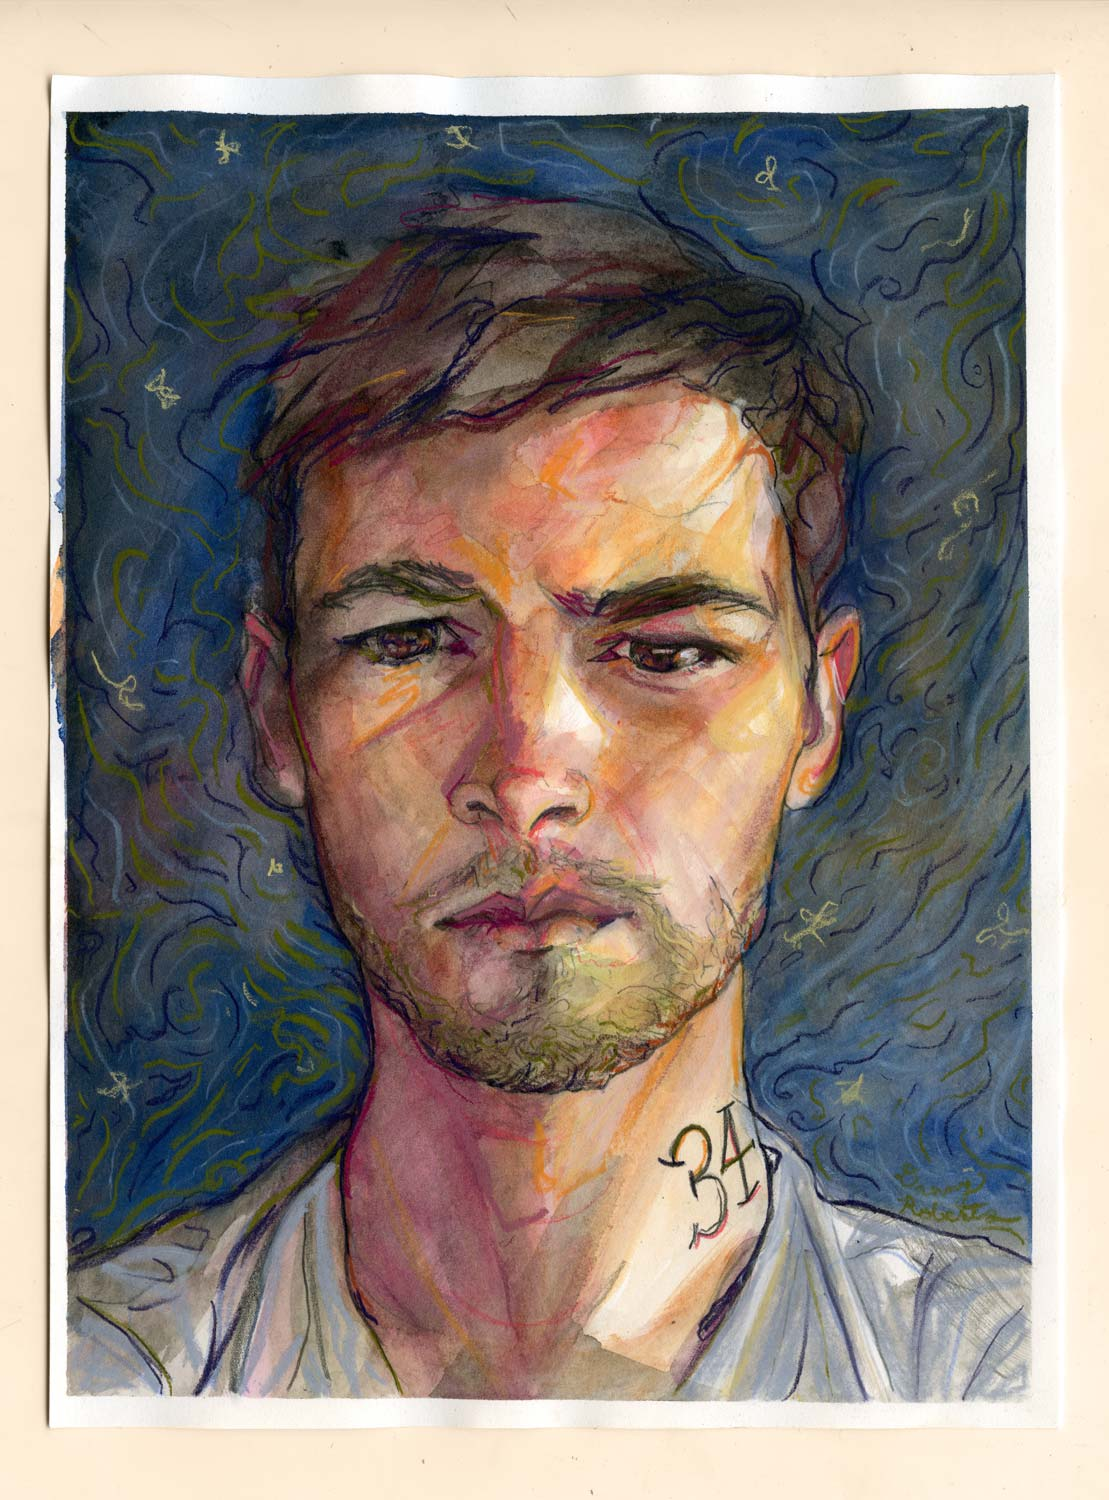 Water Color Painted self portrait of artist and Igor and andre Fashion Illustrator Danny Roberts for his 34 birthday